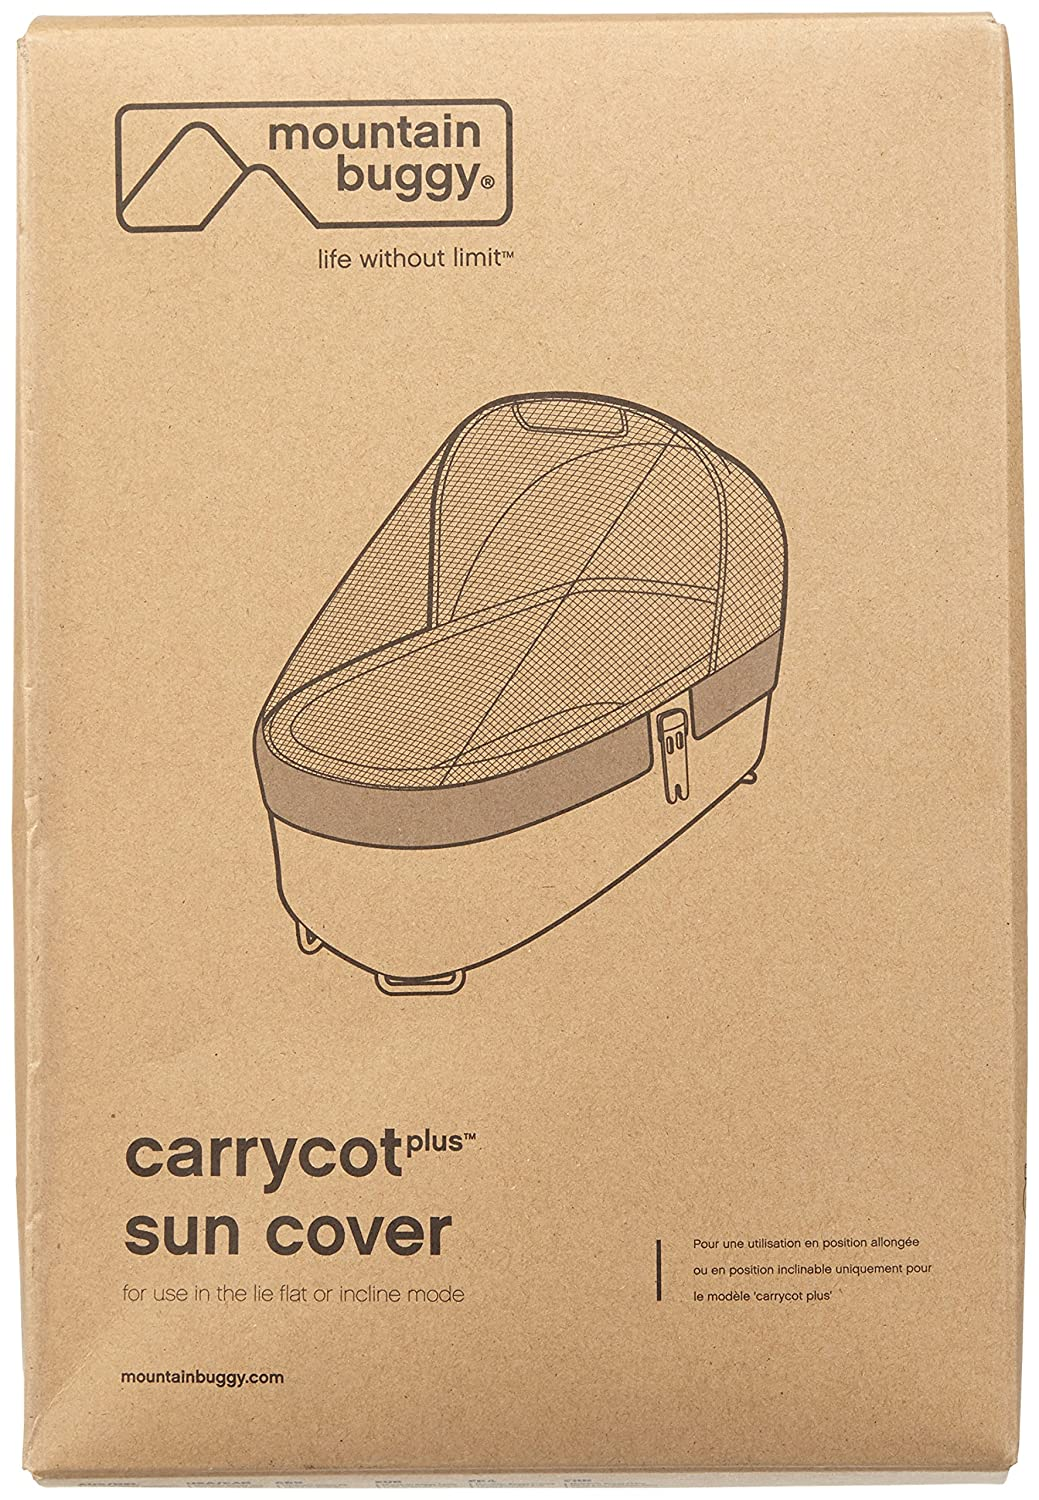 Mountain Buggy Sun Cover for Carrycot Plus for 2015 Swift and Mb Mini Strollers CCPDSM